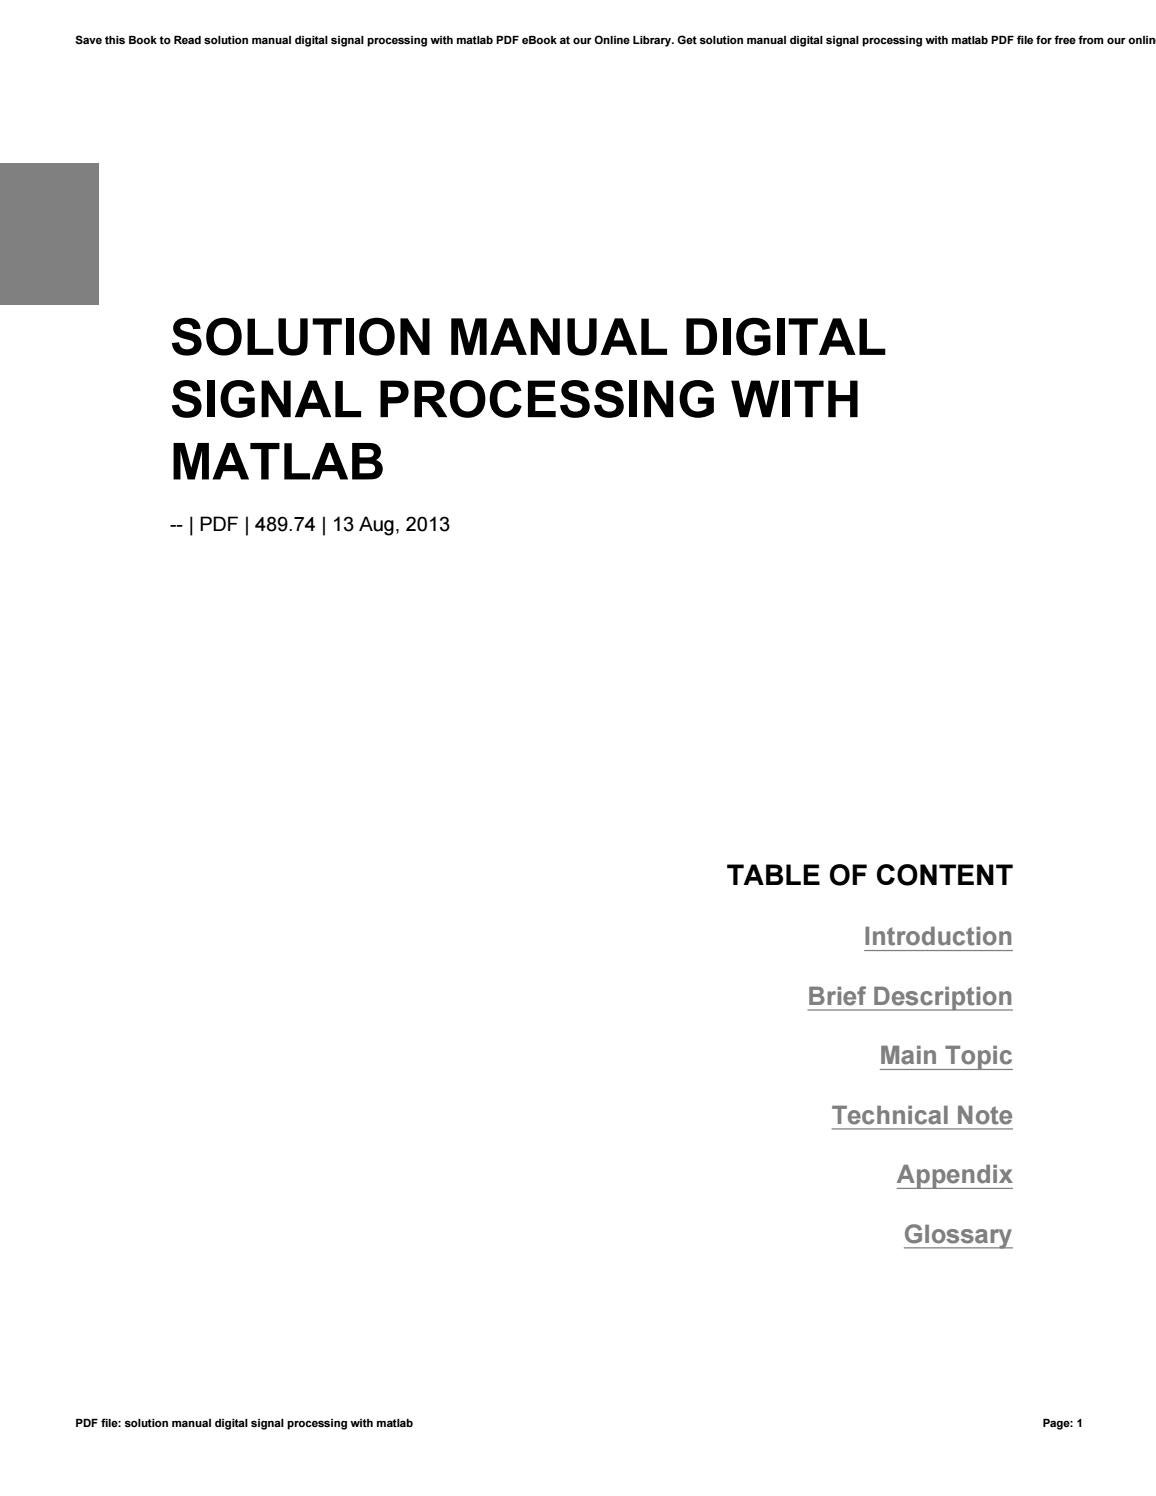 Solution manual digital signal processing with matlab by nezzart64 - issuu